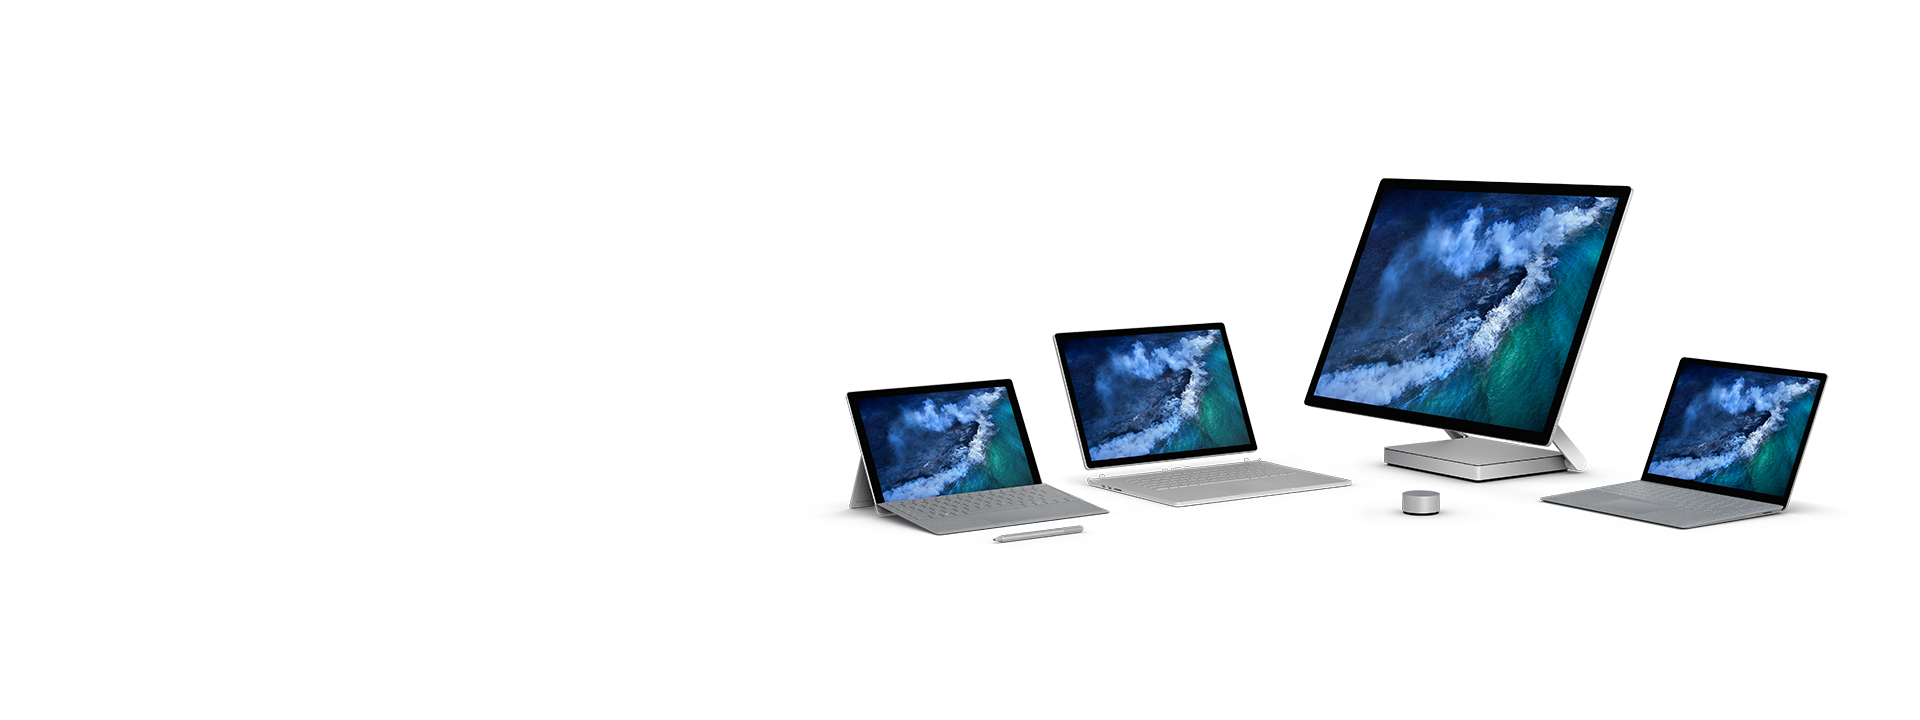 Surface Family – Surface Pro, Surface Laptop, Surface Book 2, Surface Studio, Surface Dial and Surface Pen